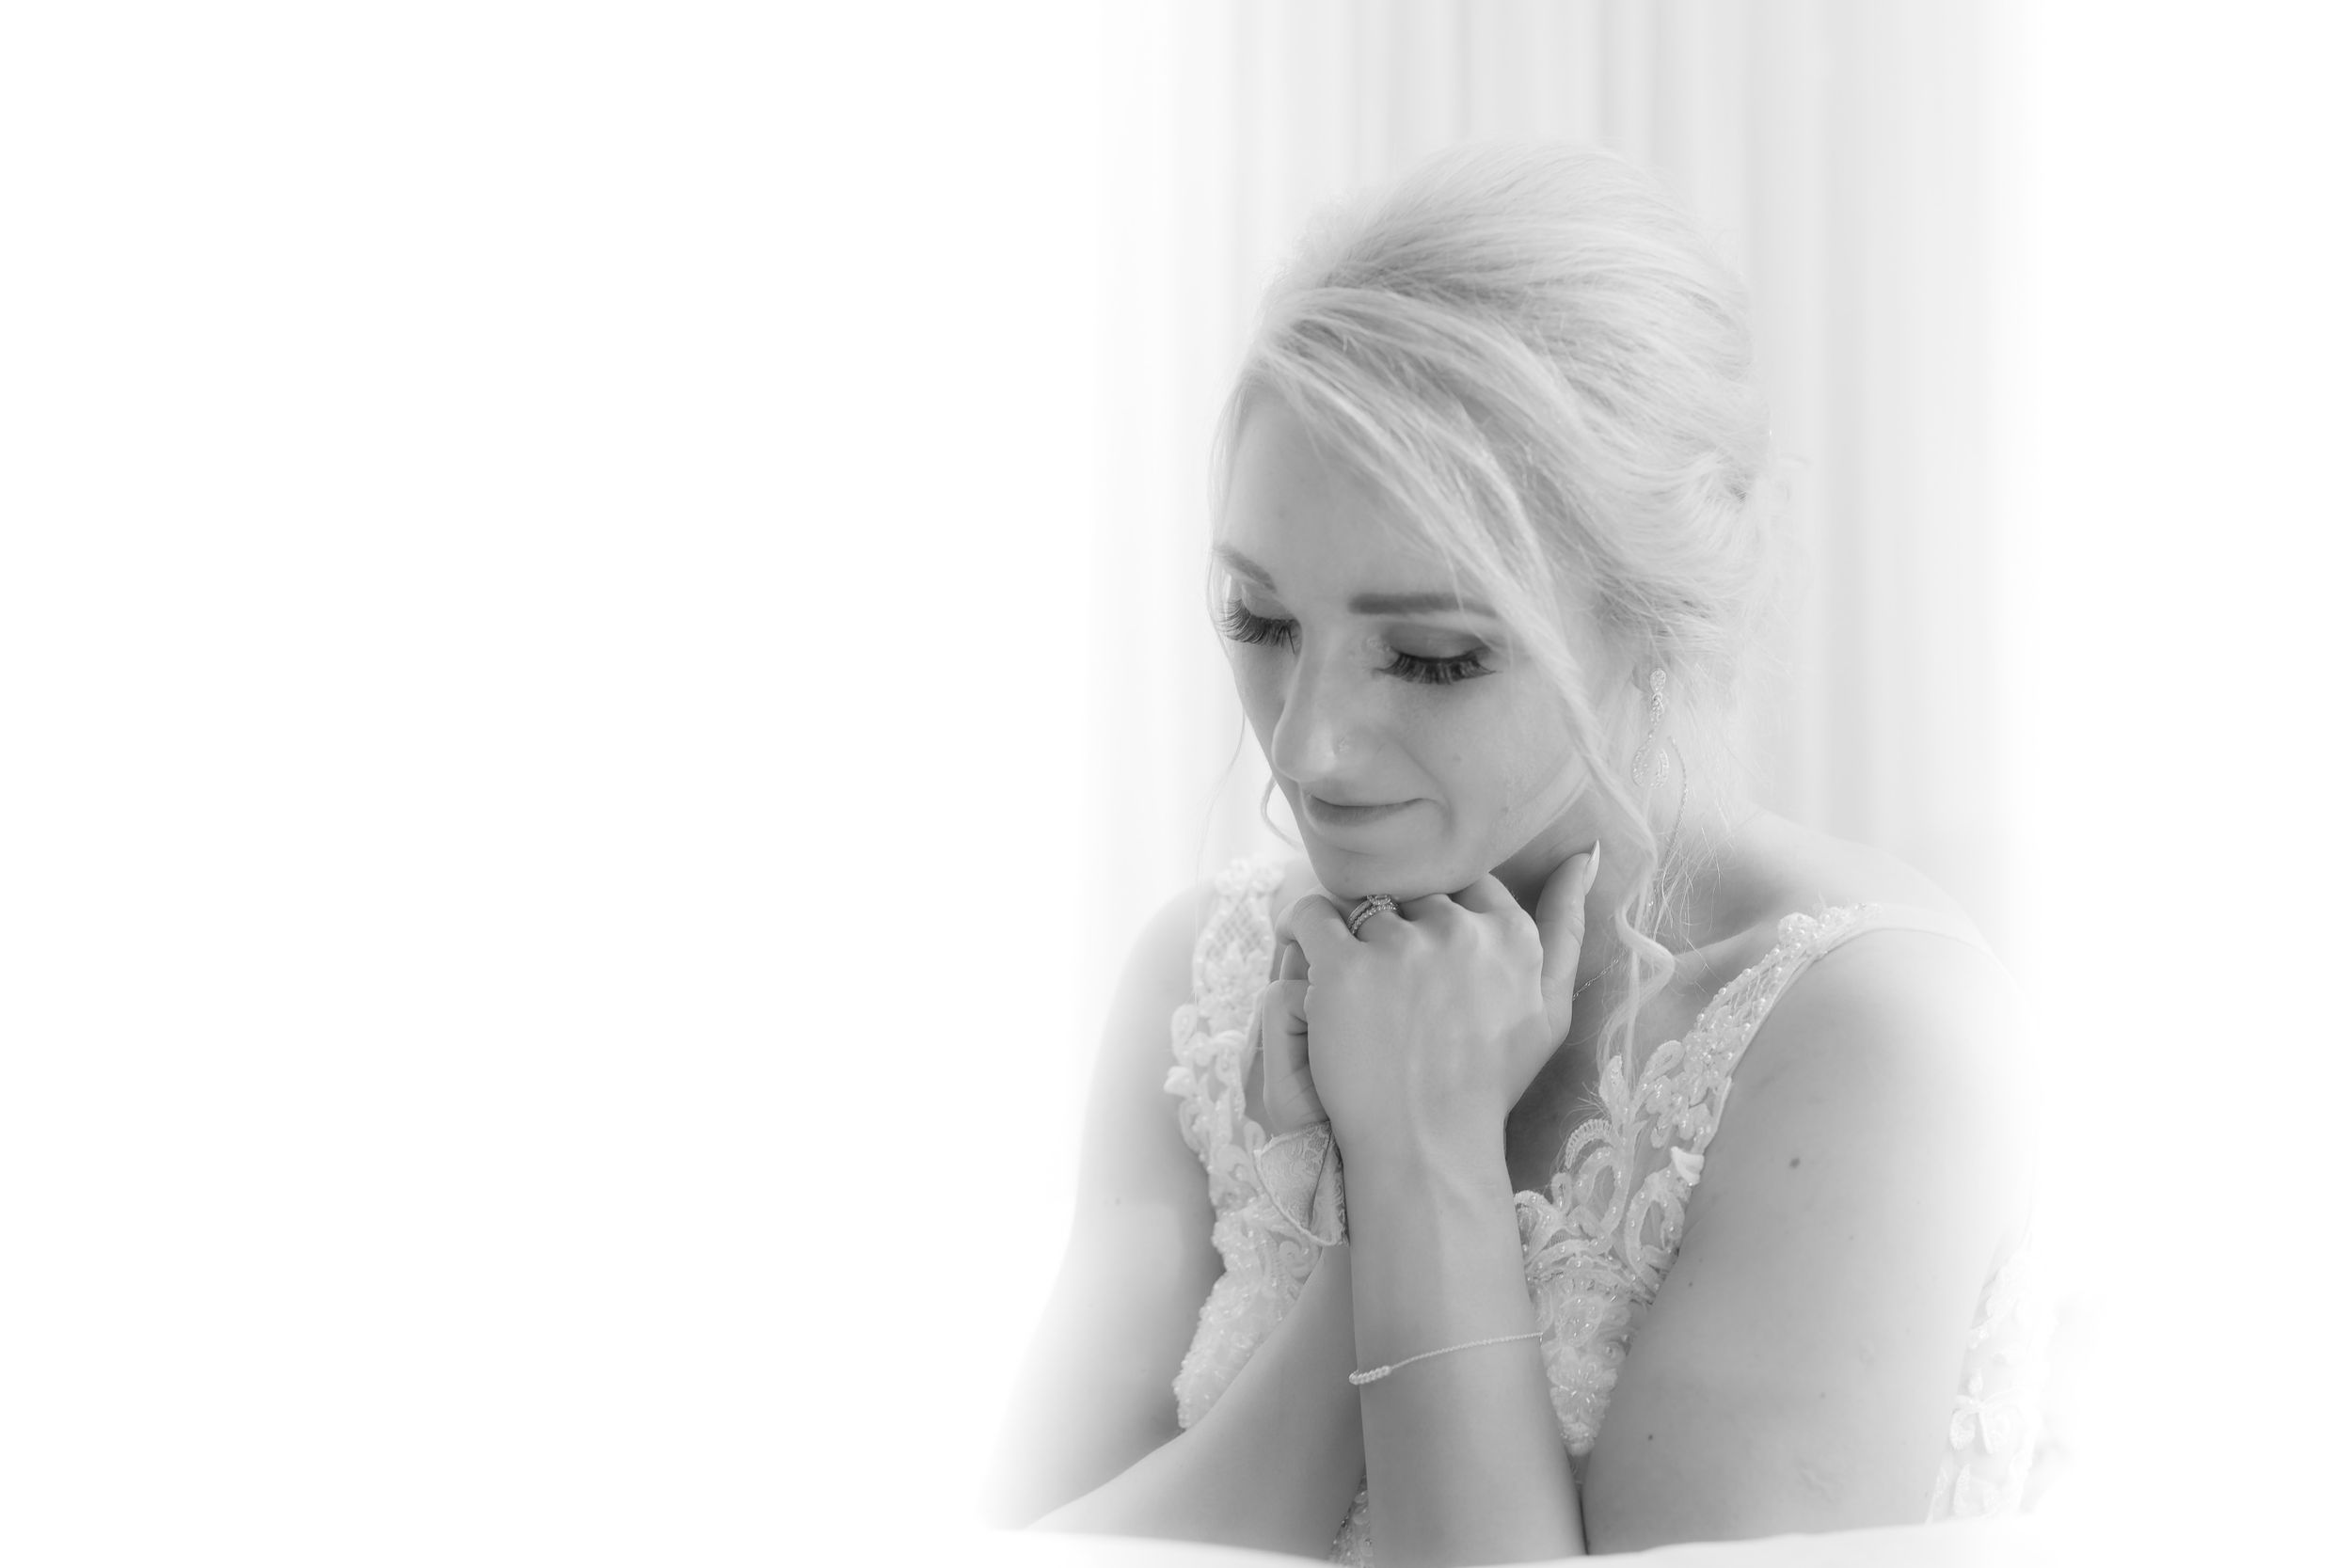 Tender moment of reflection by bride during speeches, black and white photography